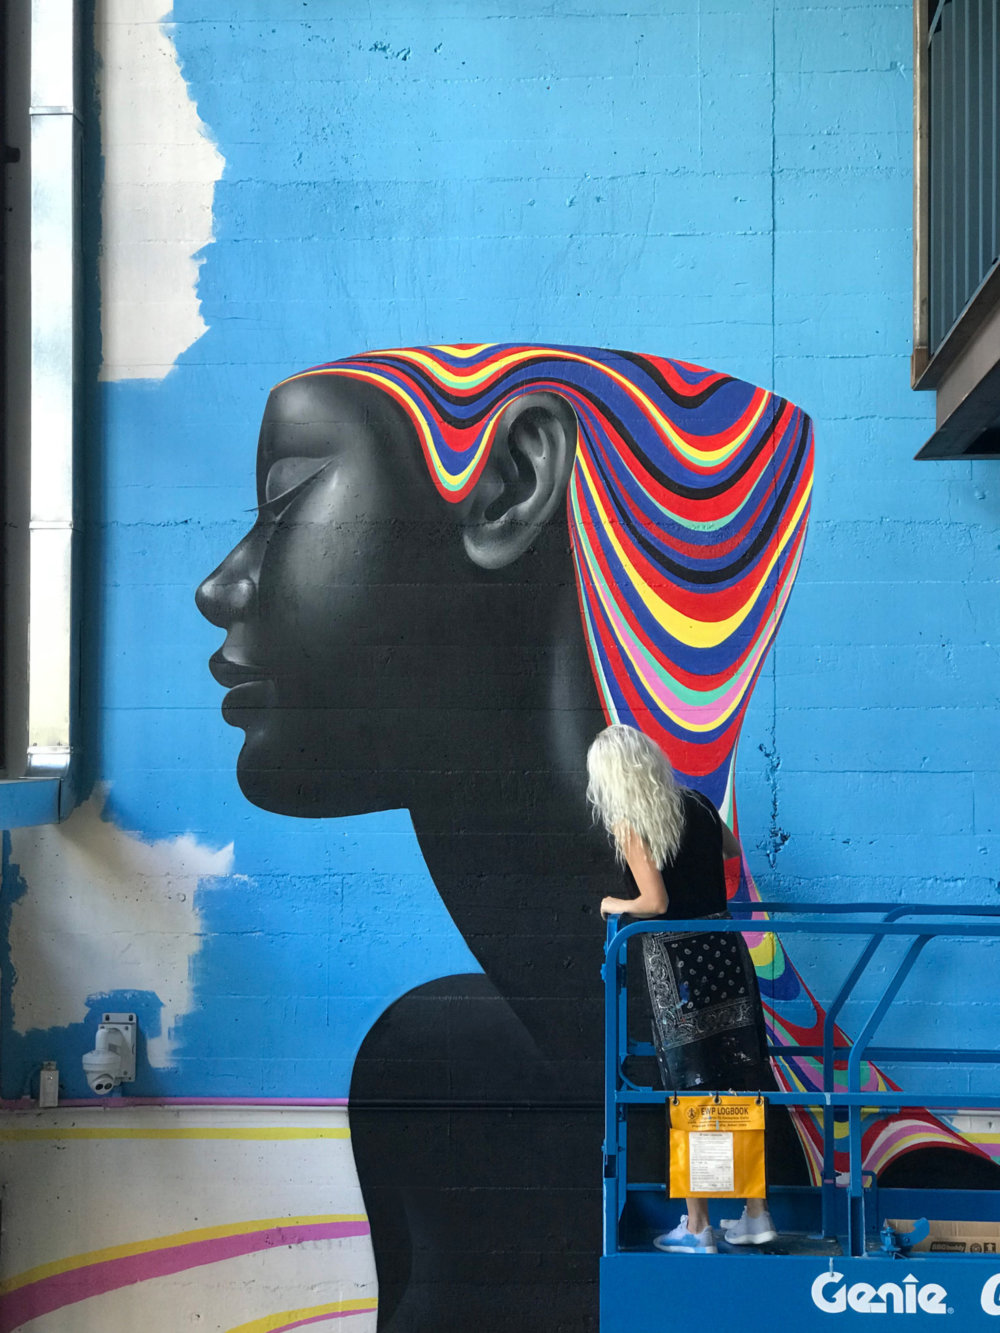 Murals Of Monochromatic Figures Pouring Colorful Fluids By Gina Kiel 10